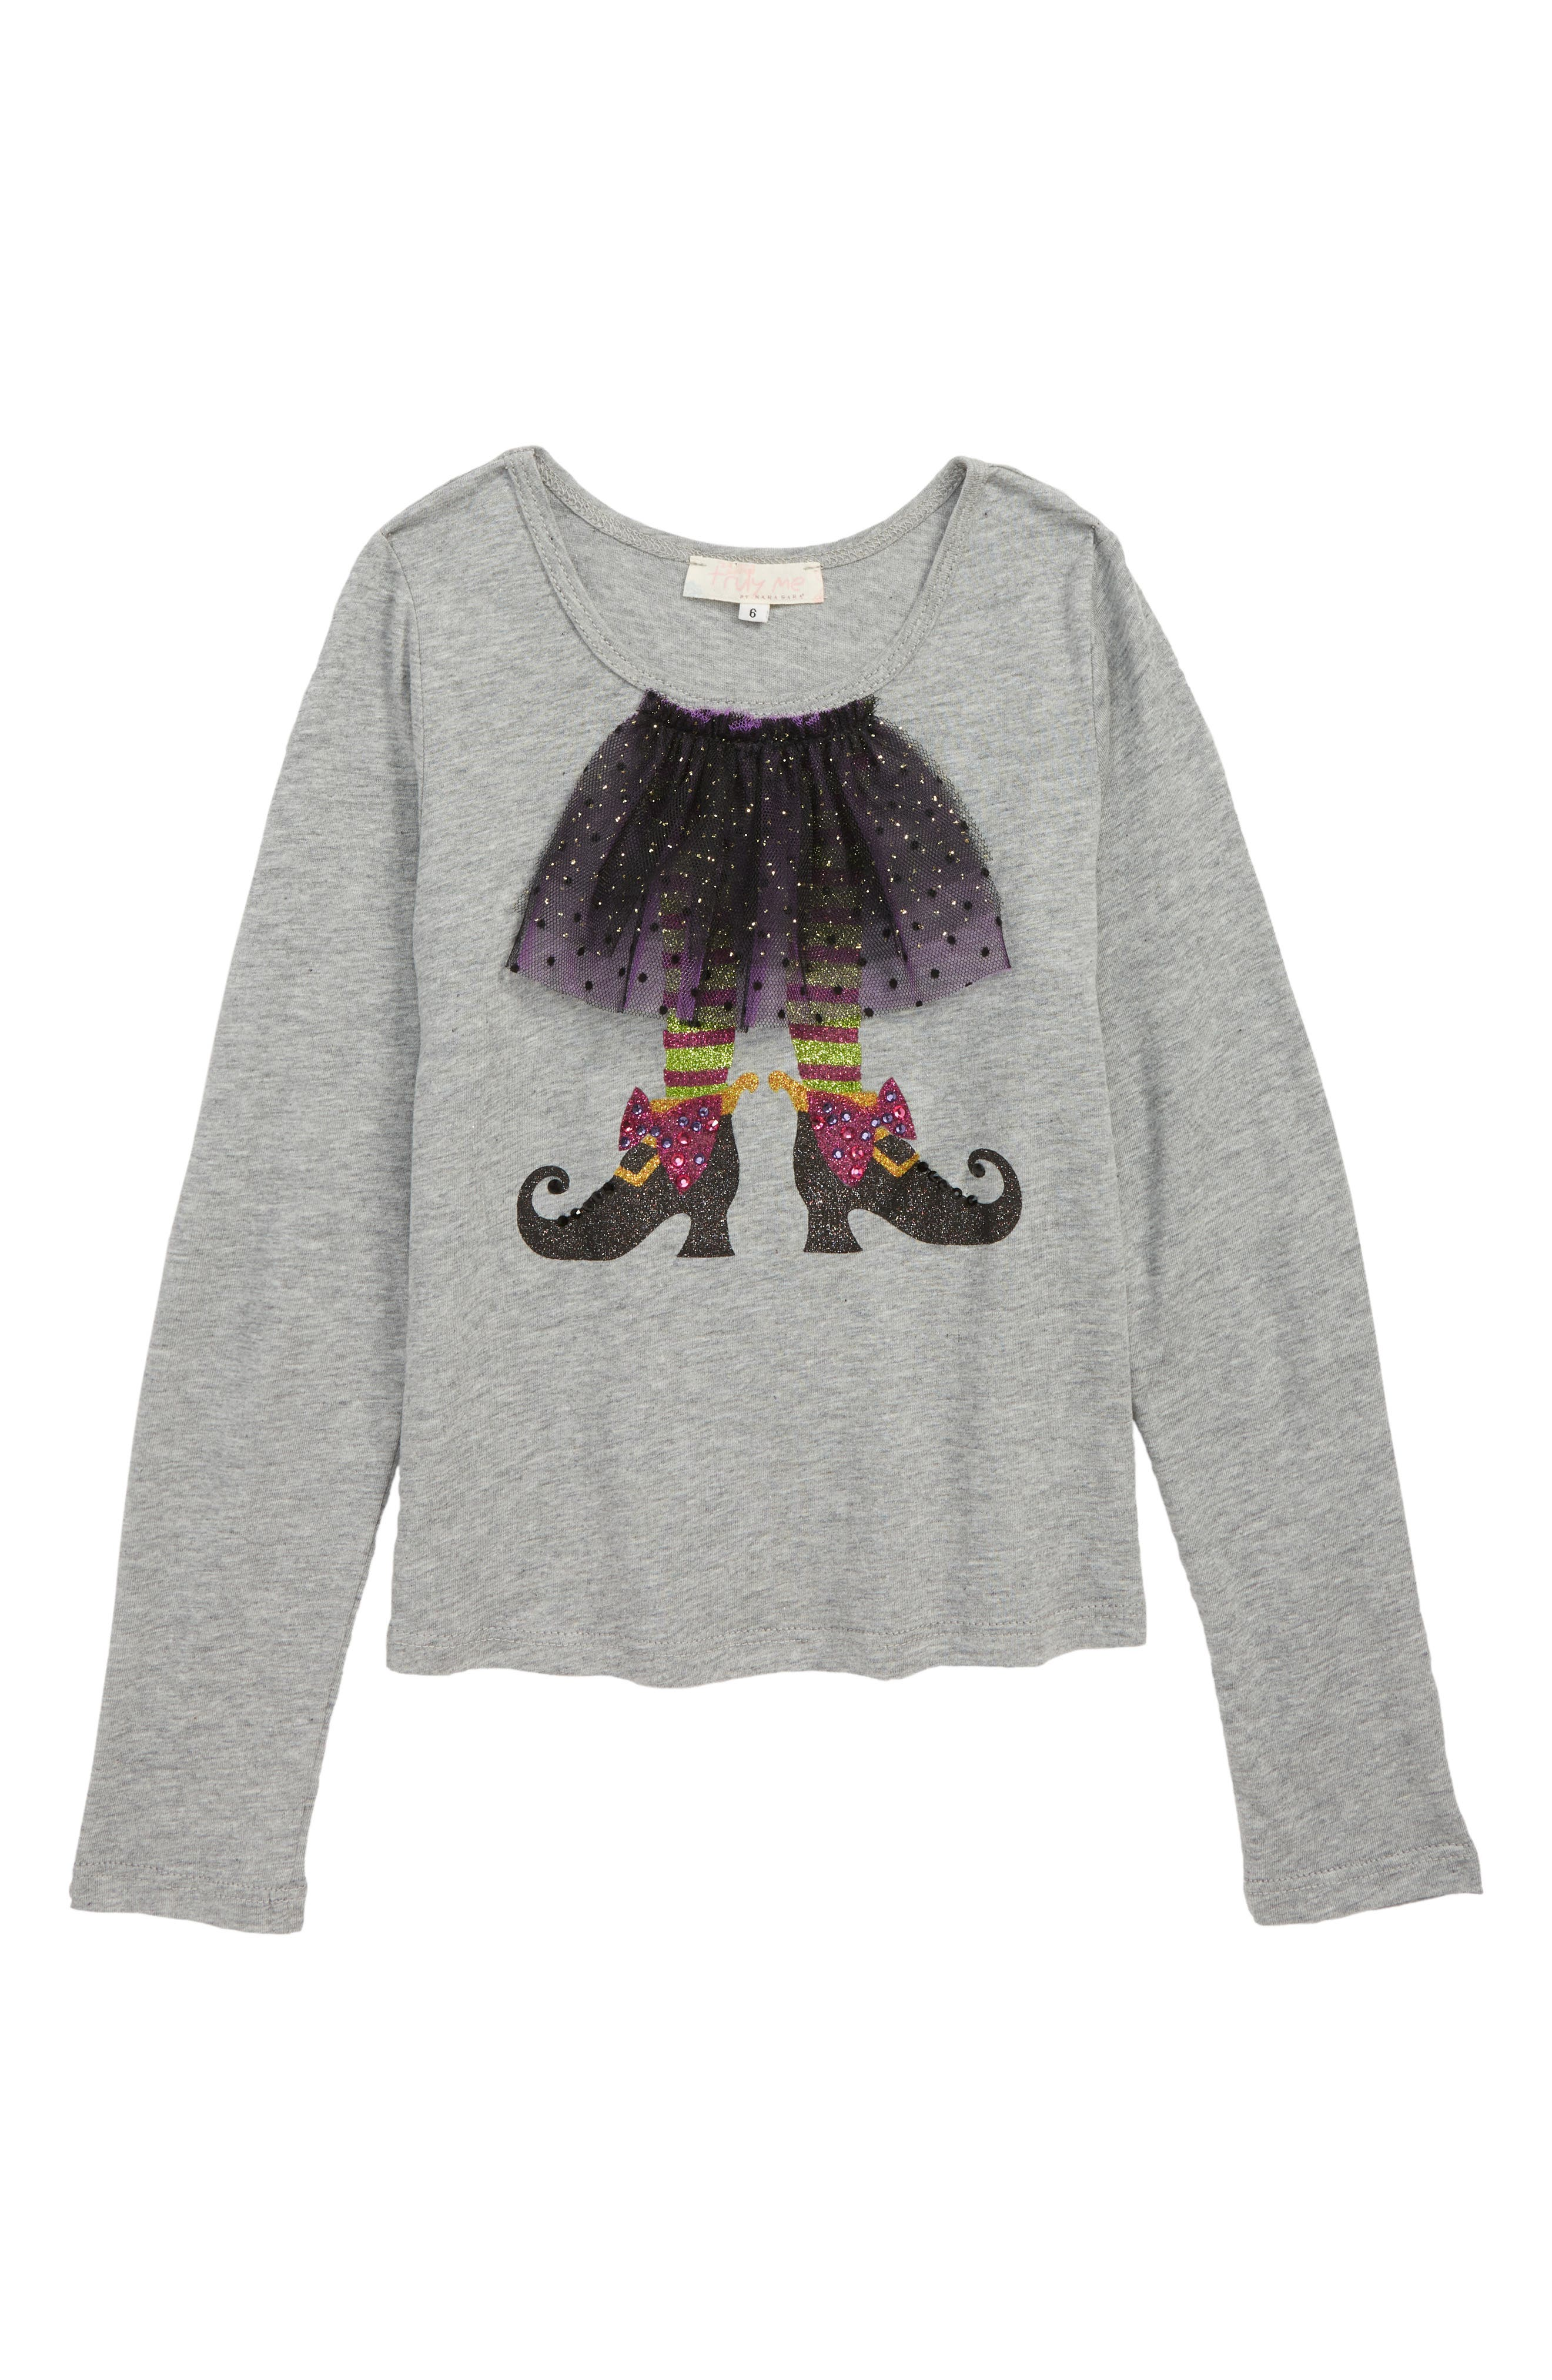 Tutu Witch Tee,                             Main thumbnail 1, color,                             GREY